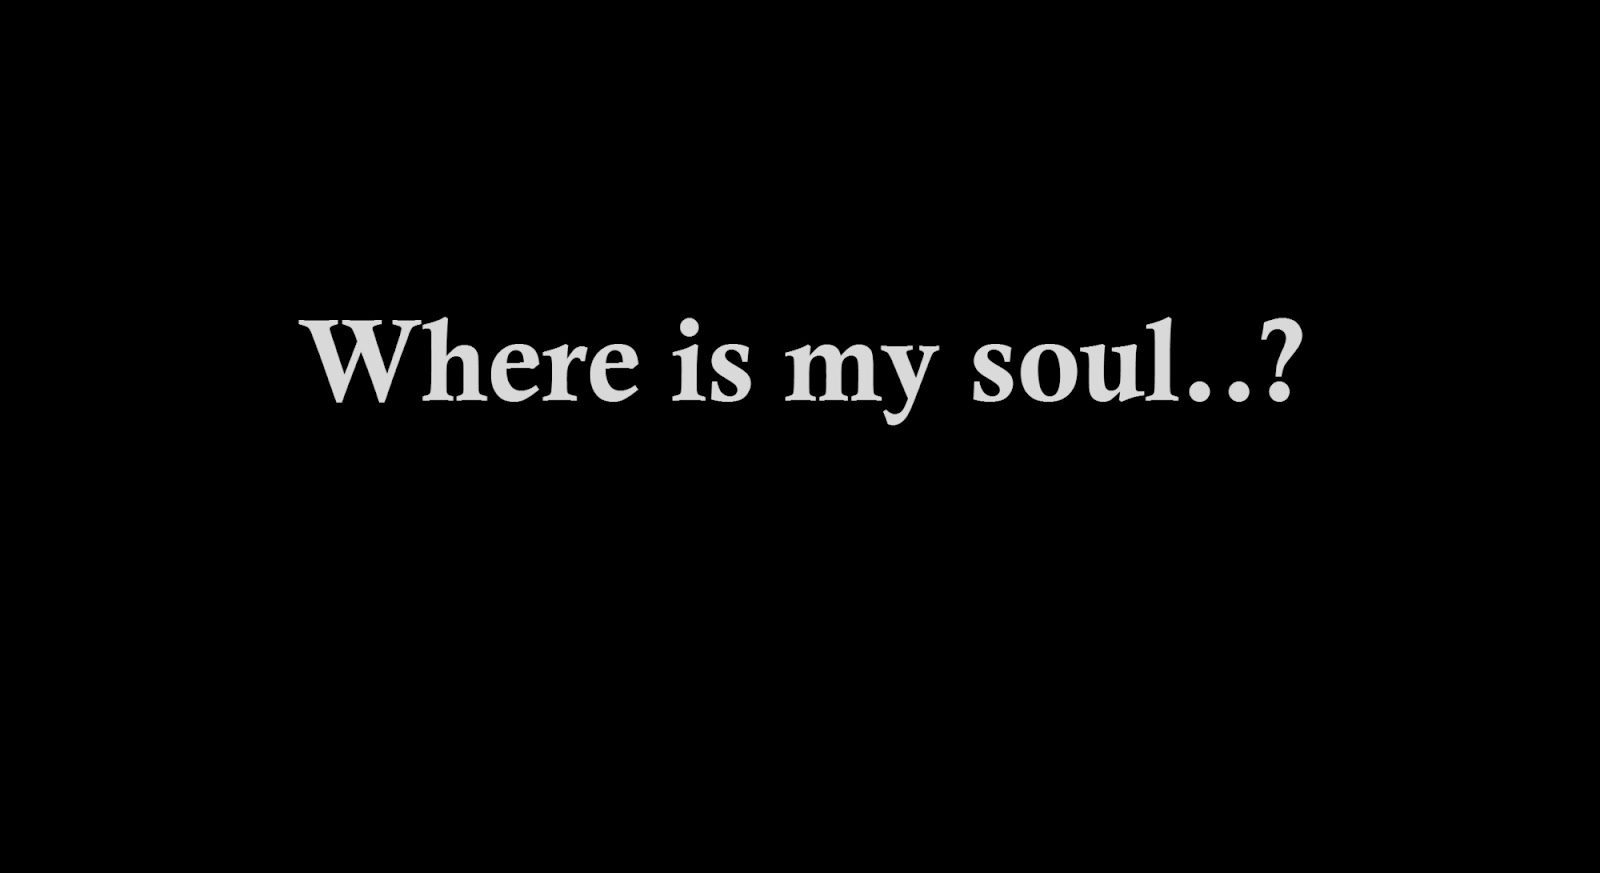 Where is my soul..?